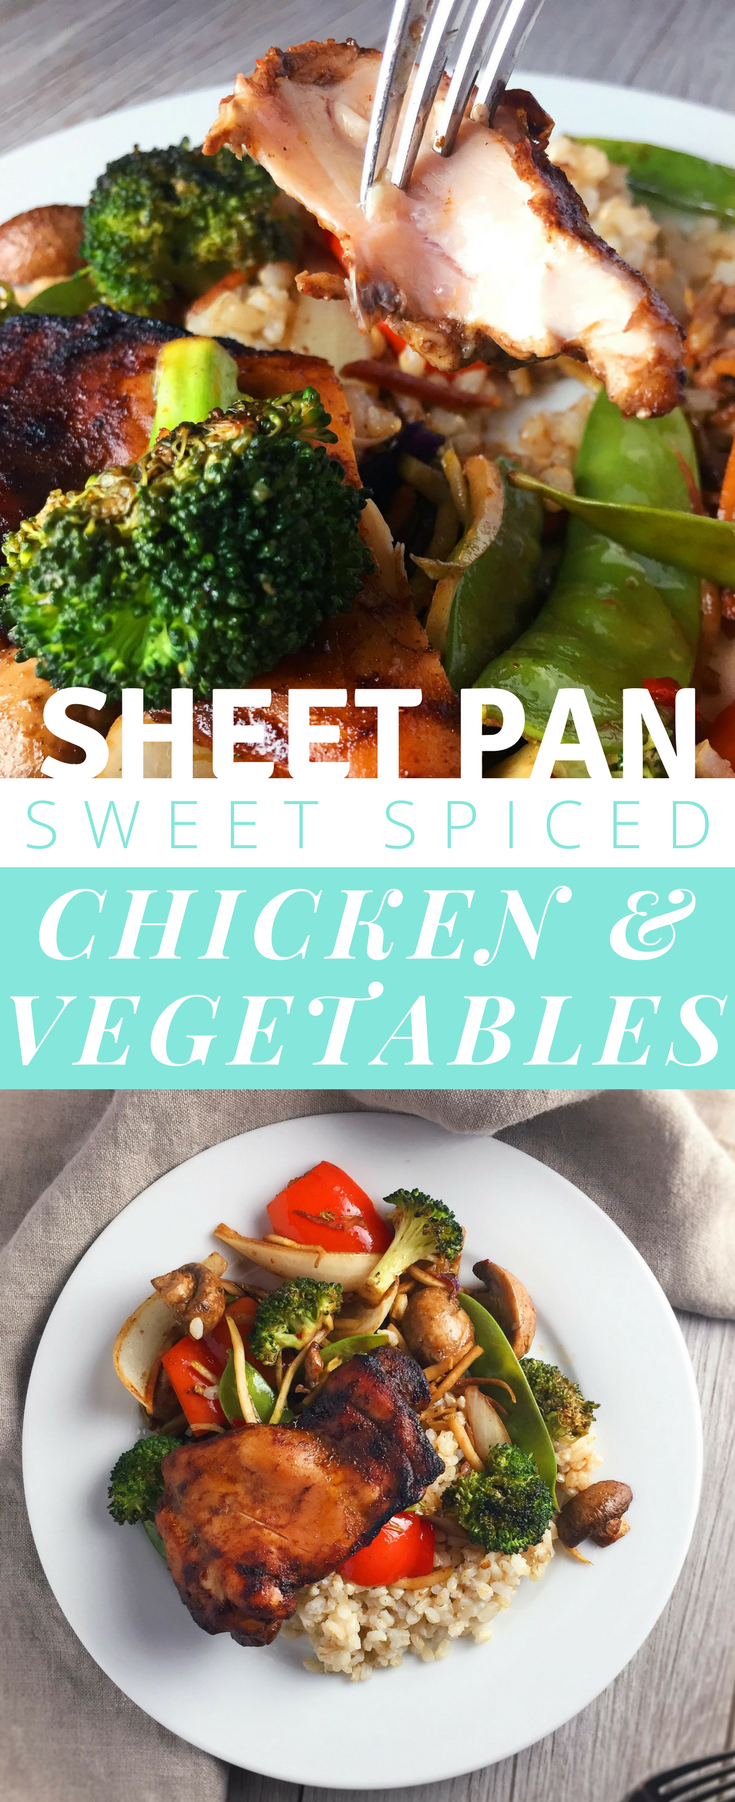 sheet-pan-sweet-spiced-chicken-thighs-and-vegetables-main-pin.png